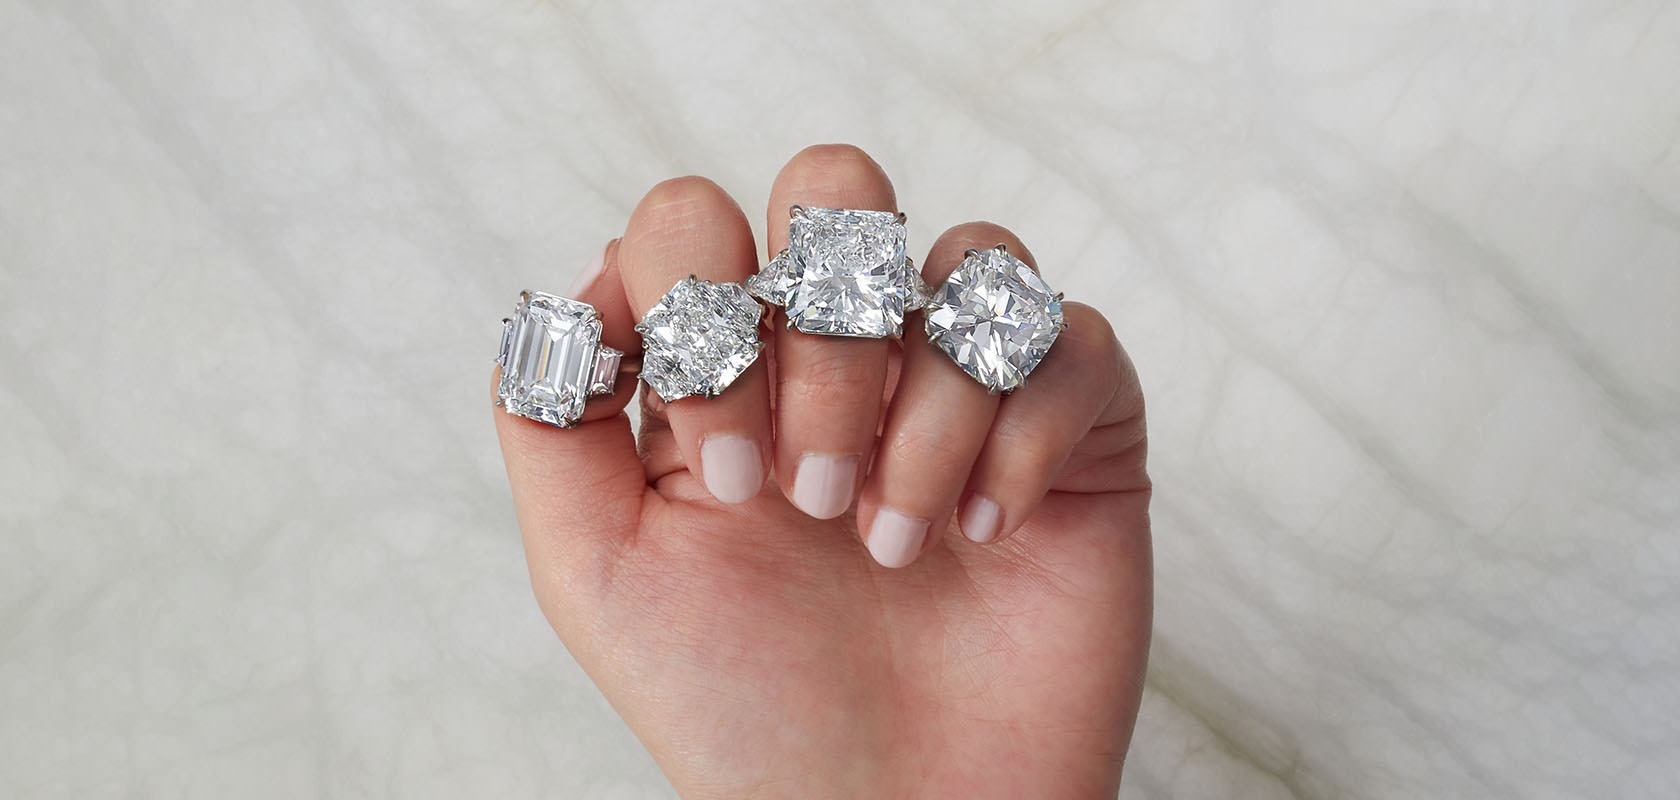 Does Diamond Size Matter? How Big Is Too Big?